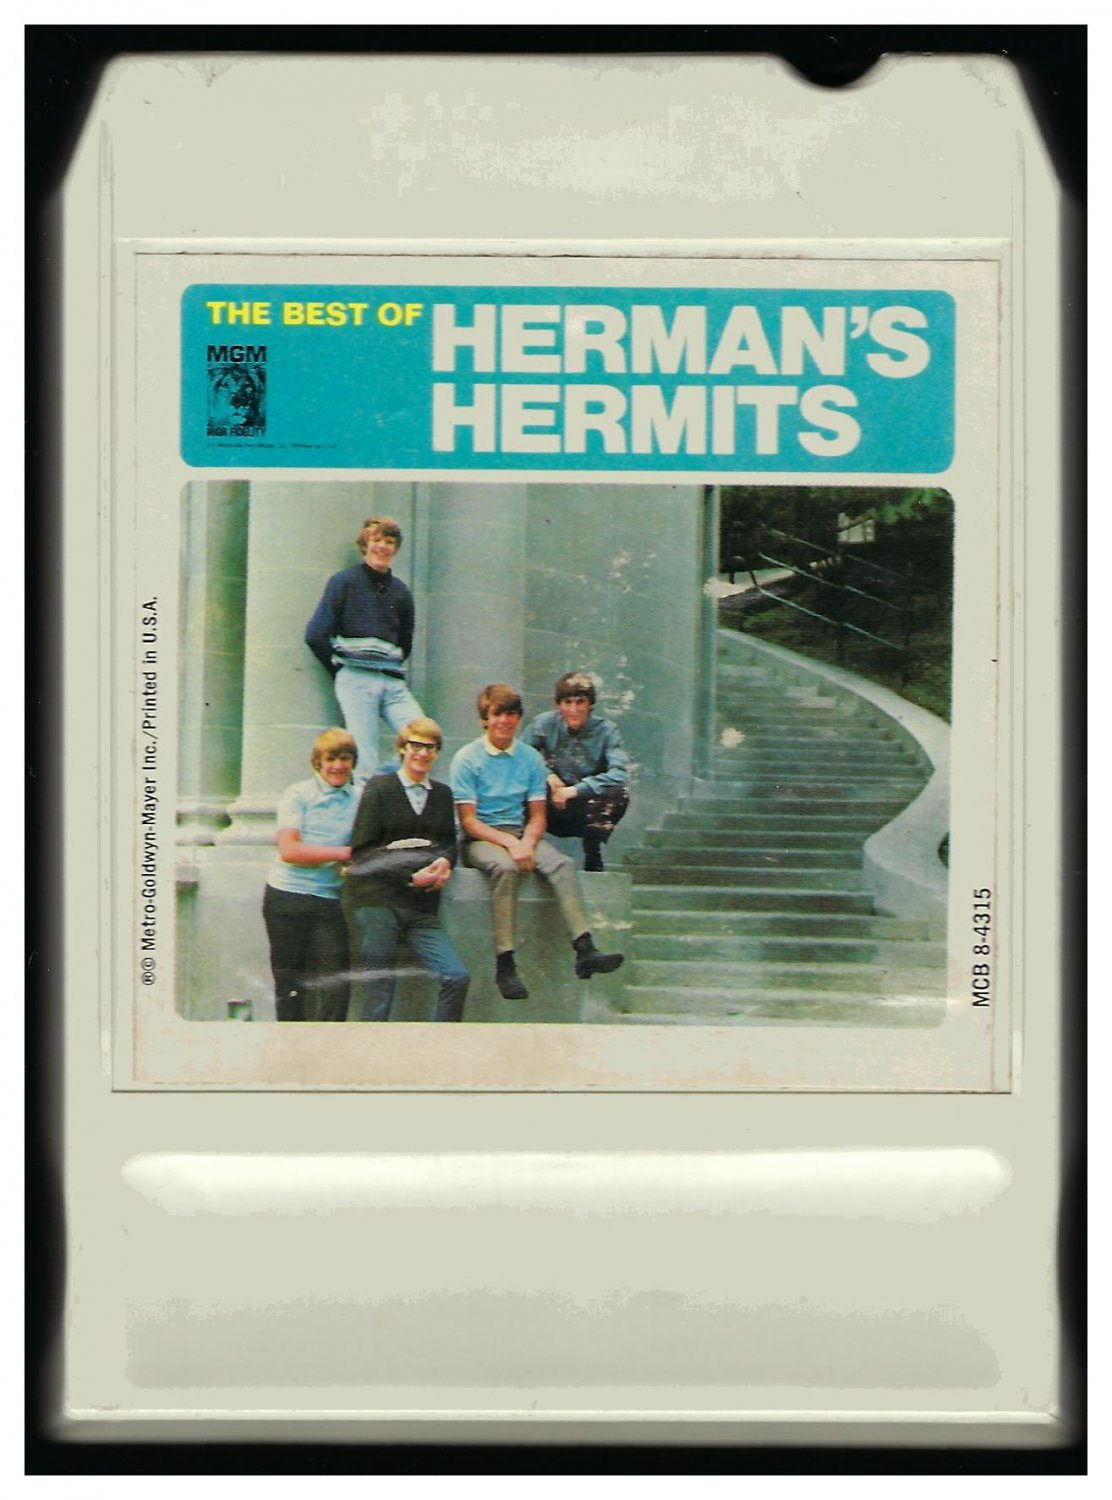 Herman's Hermits - The Best Of Herman's Hermits 1965 MGM LEAR AMPEX T3 8-TRACK TAPE